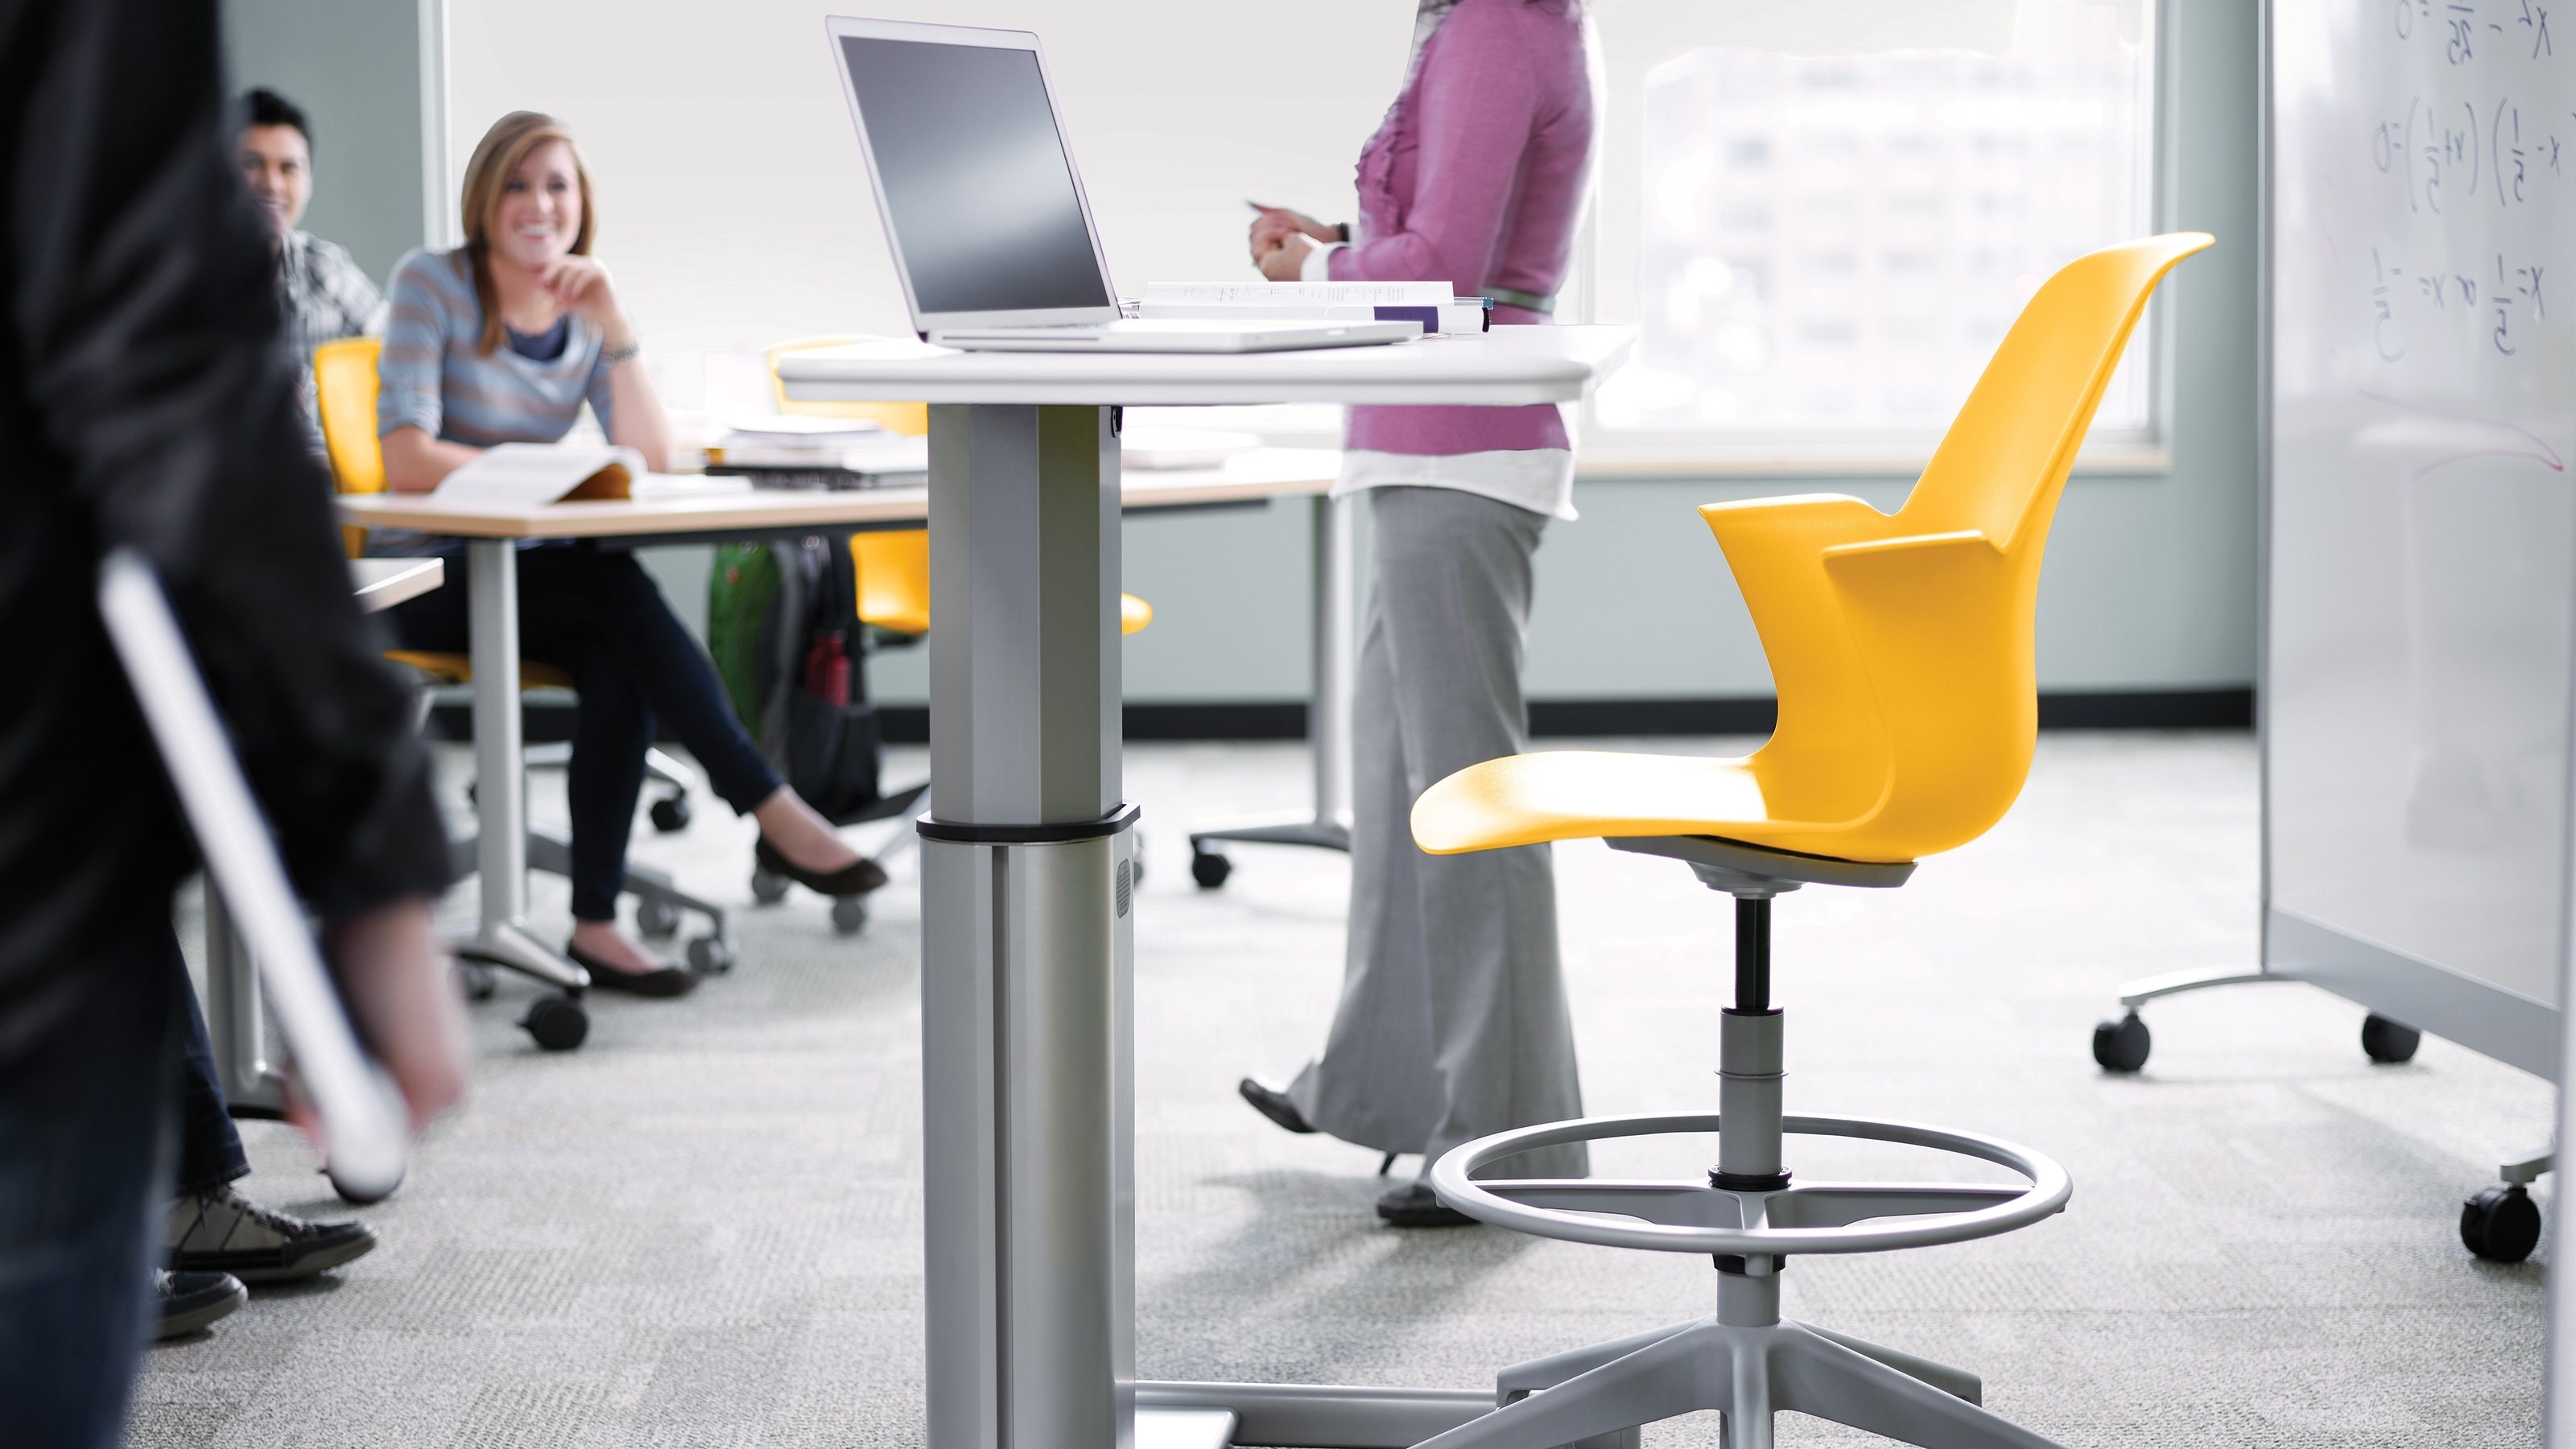 Node Desk Chairs & Classroom Furniture – Steelcase Within Fashionable Computer Desks For Schools (View 13 of 20)